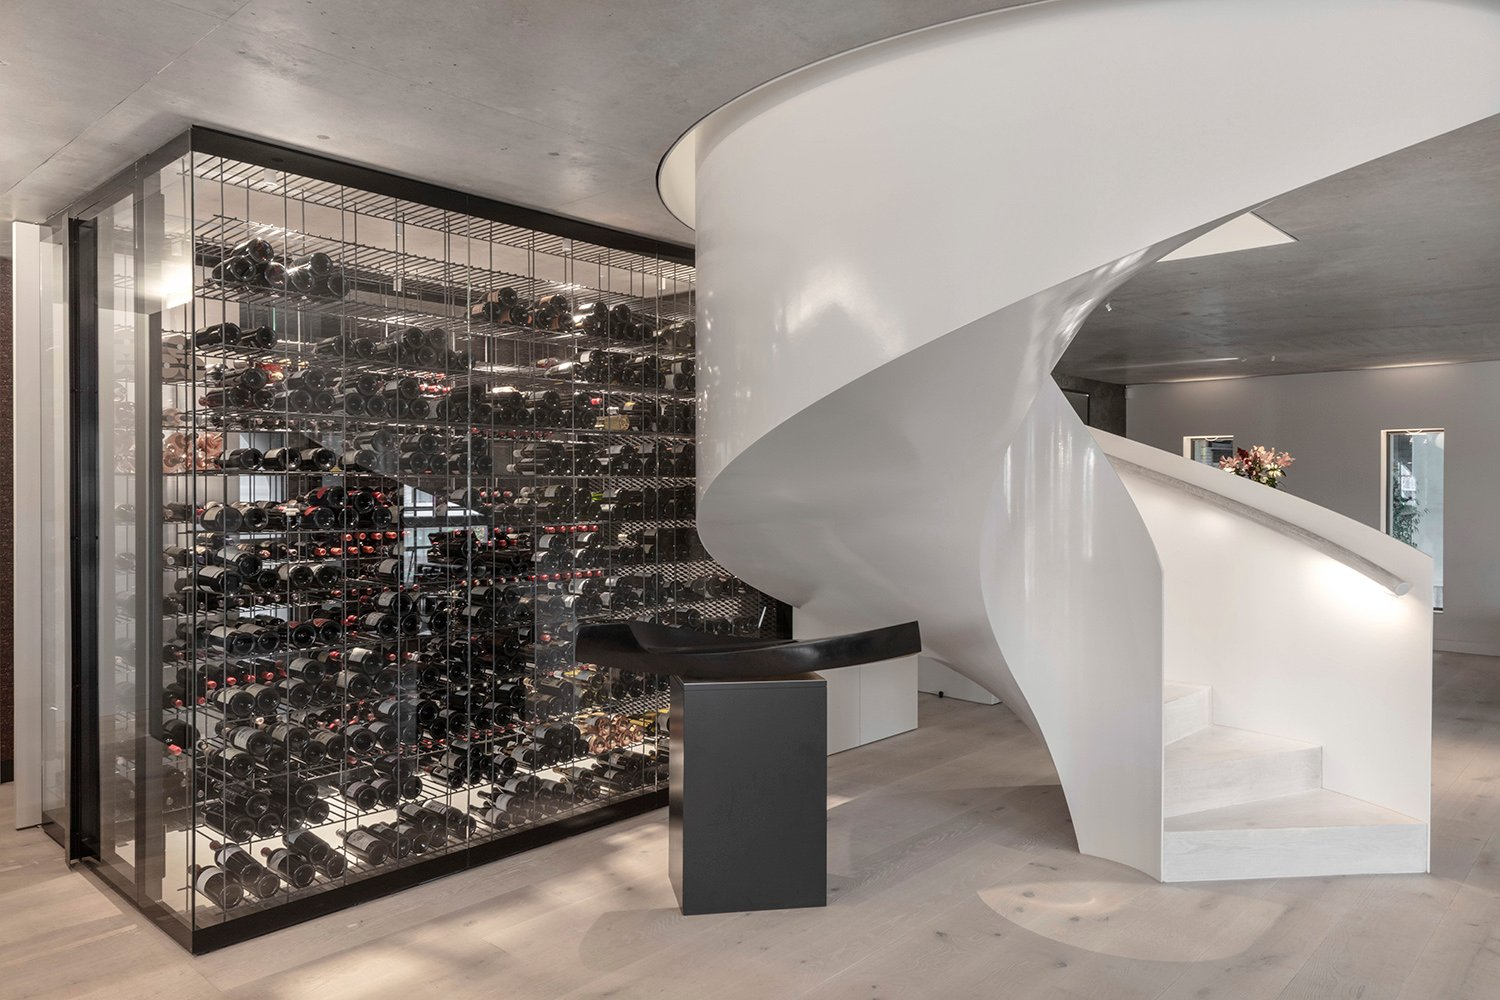 """Transparent glass wine room to help bring """"lightness"""" within the space. Delphine Burtin"""